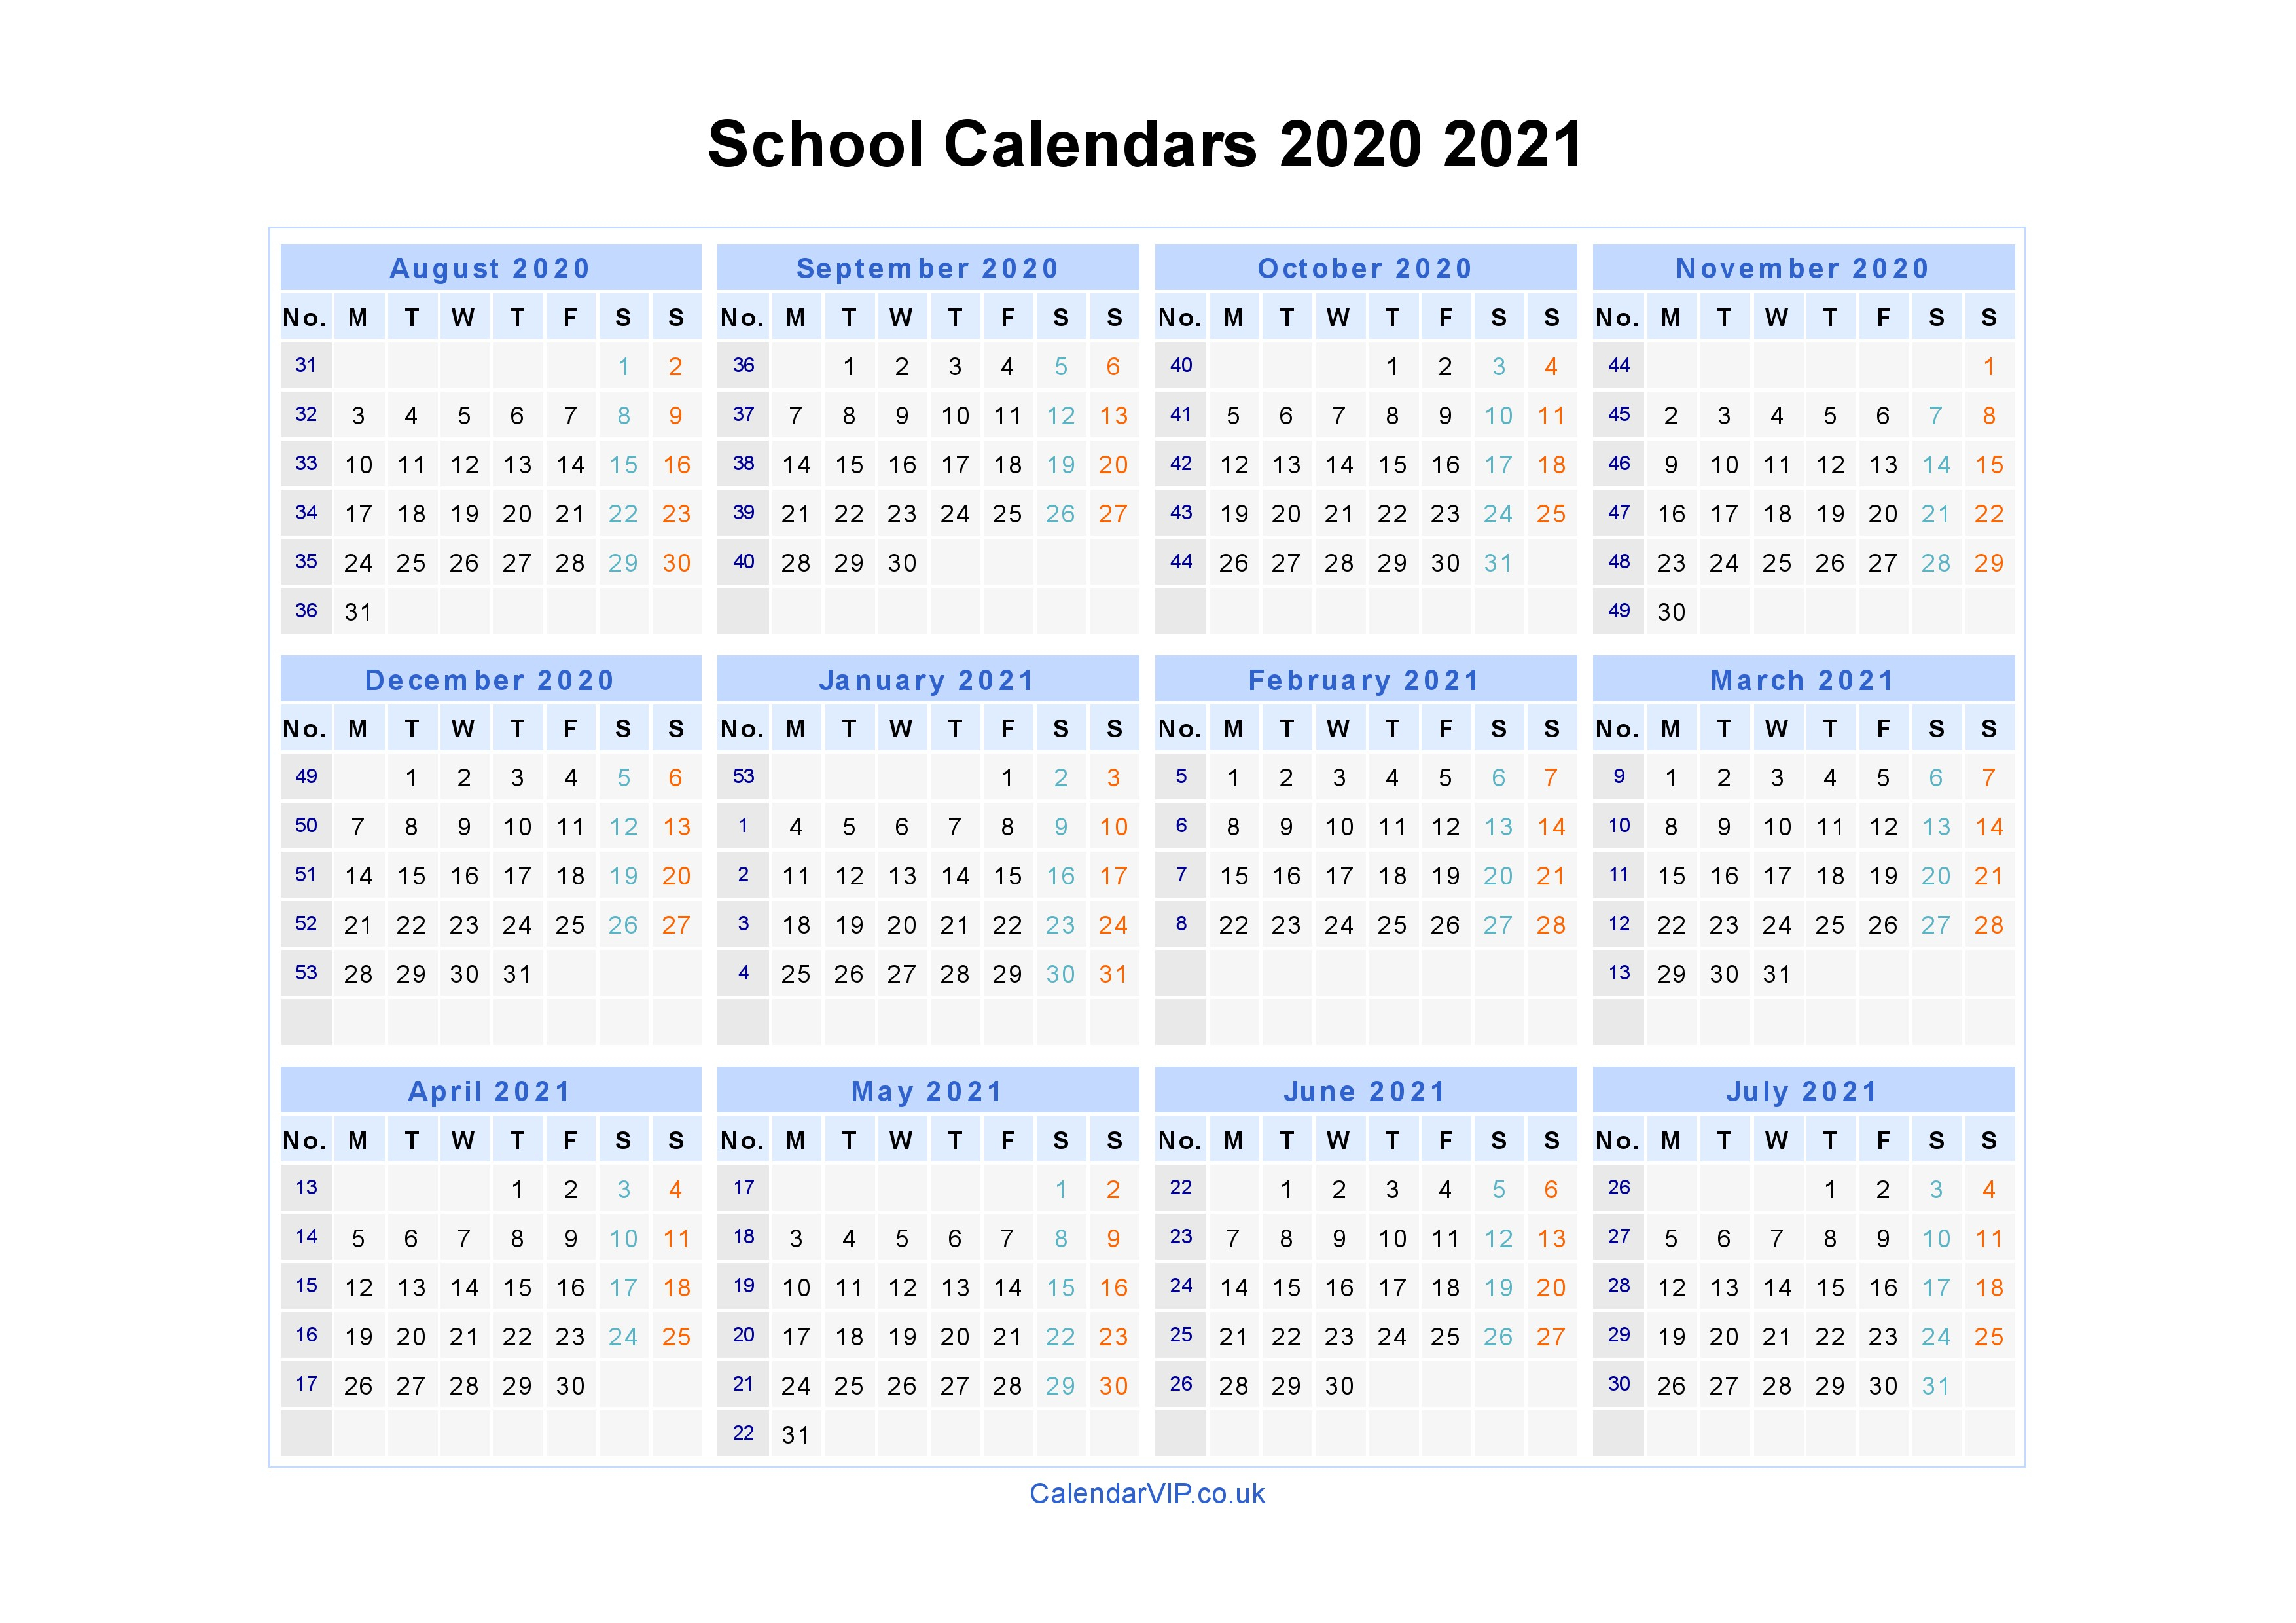 School Calendars 2020 2021 - Calendar From August 2020 To July 2021